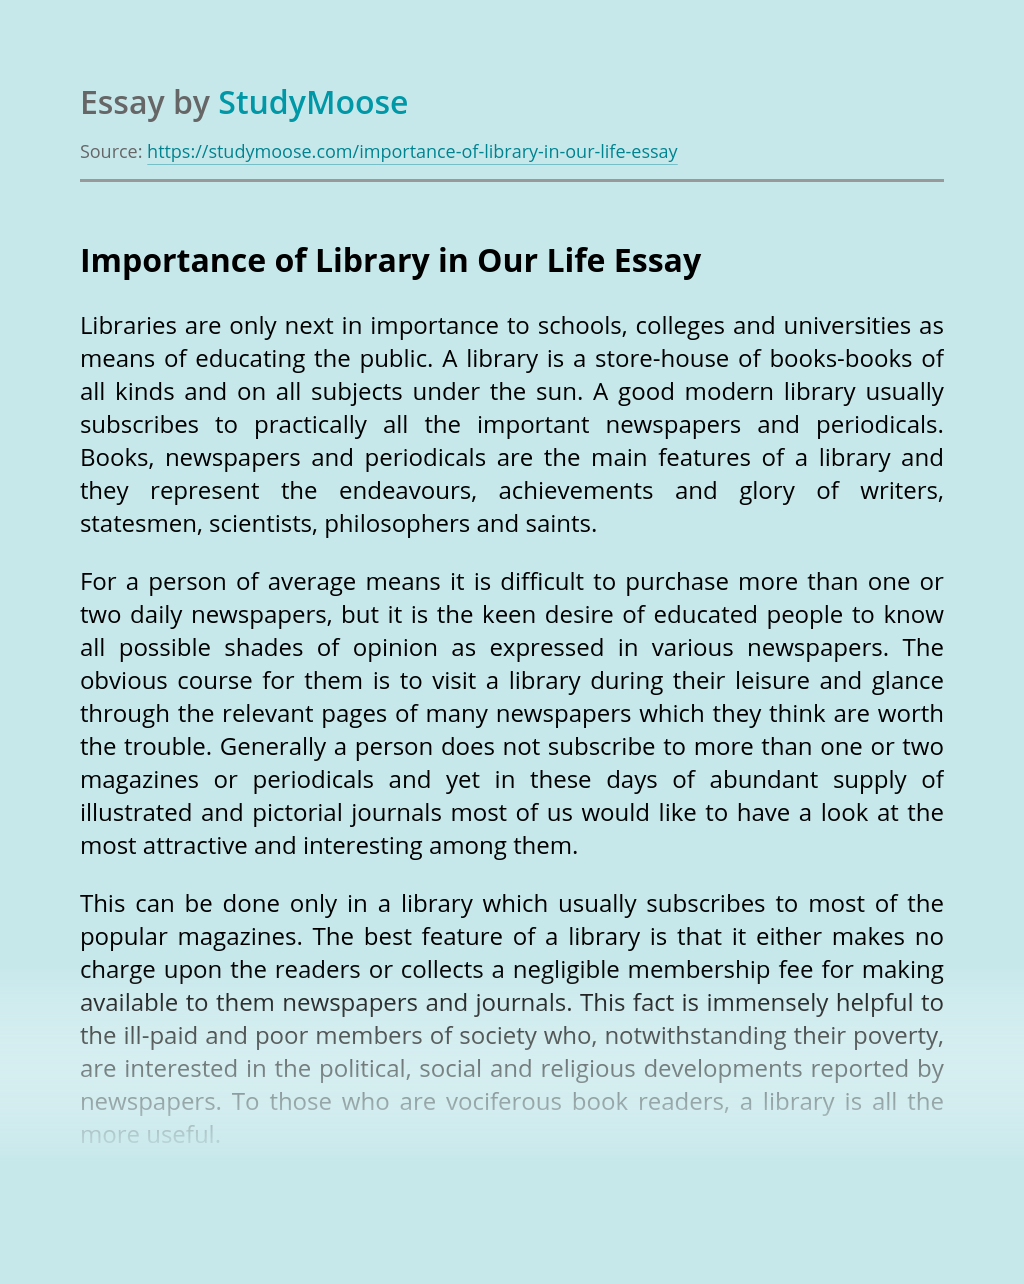 Importance of Library in Our Life